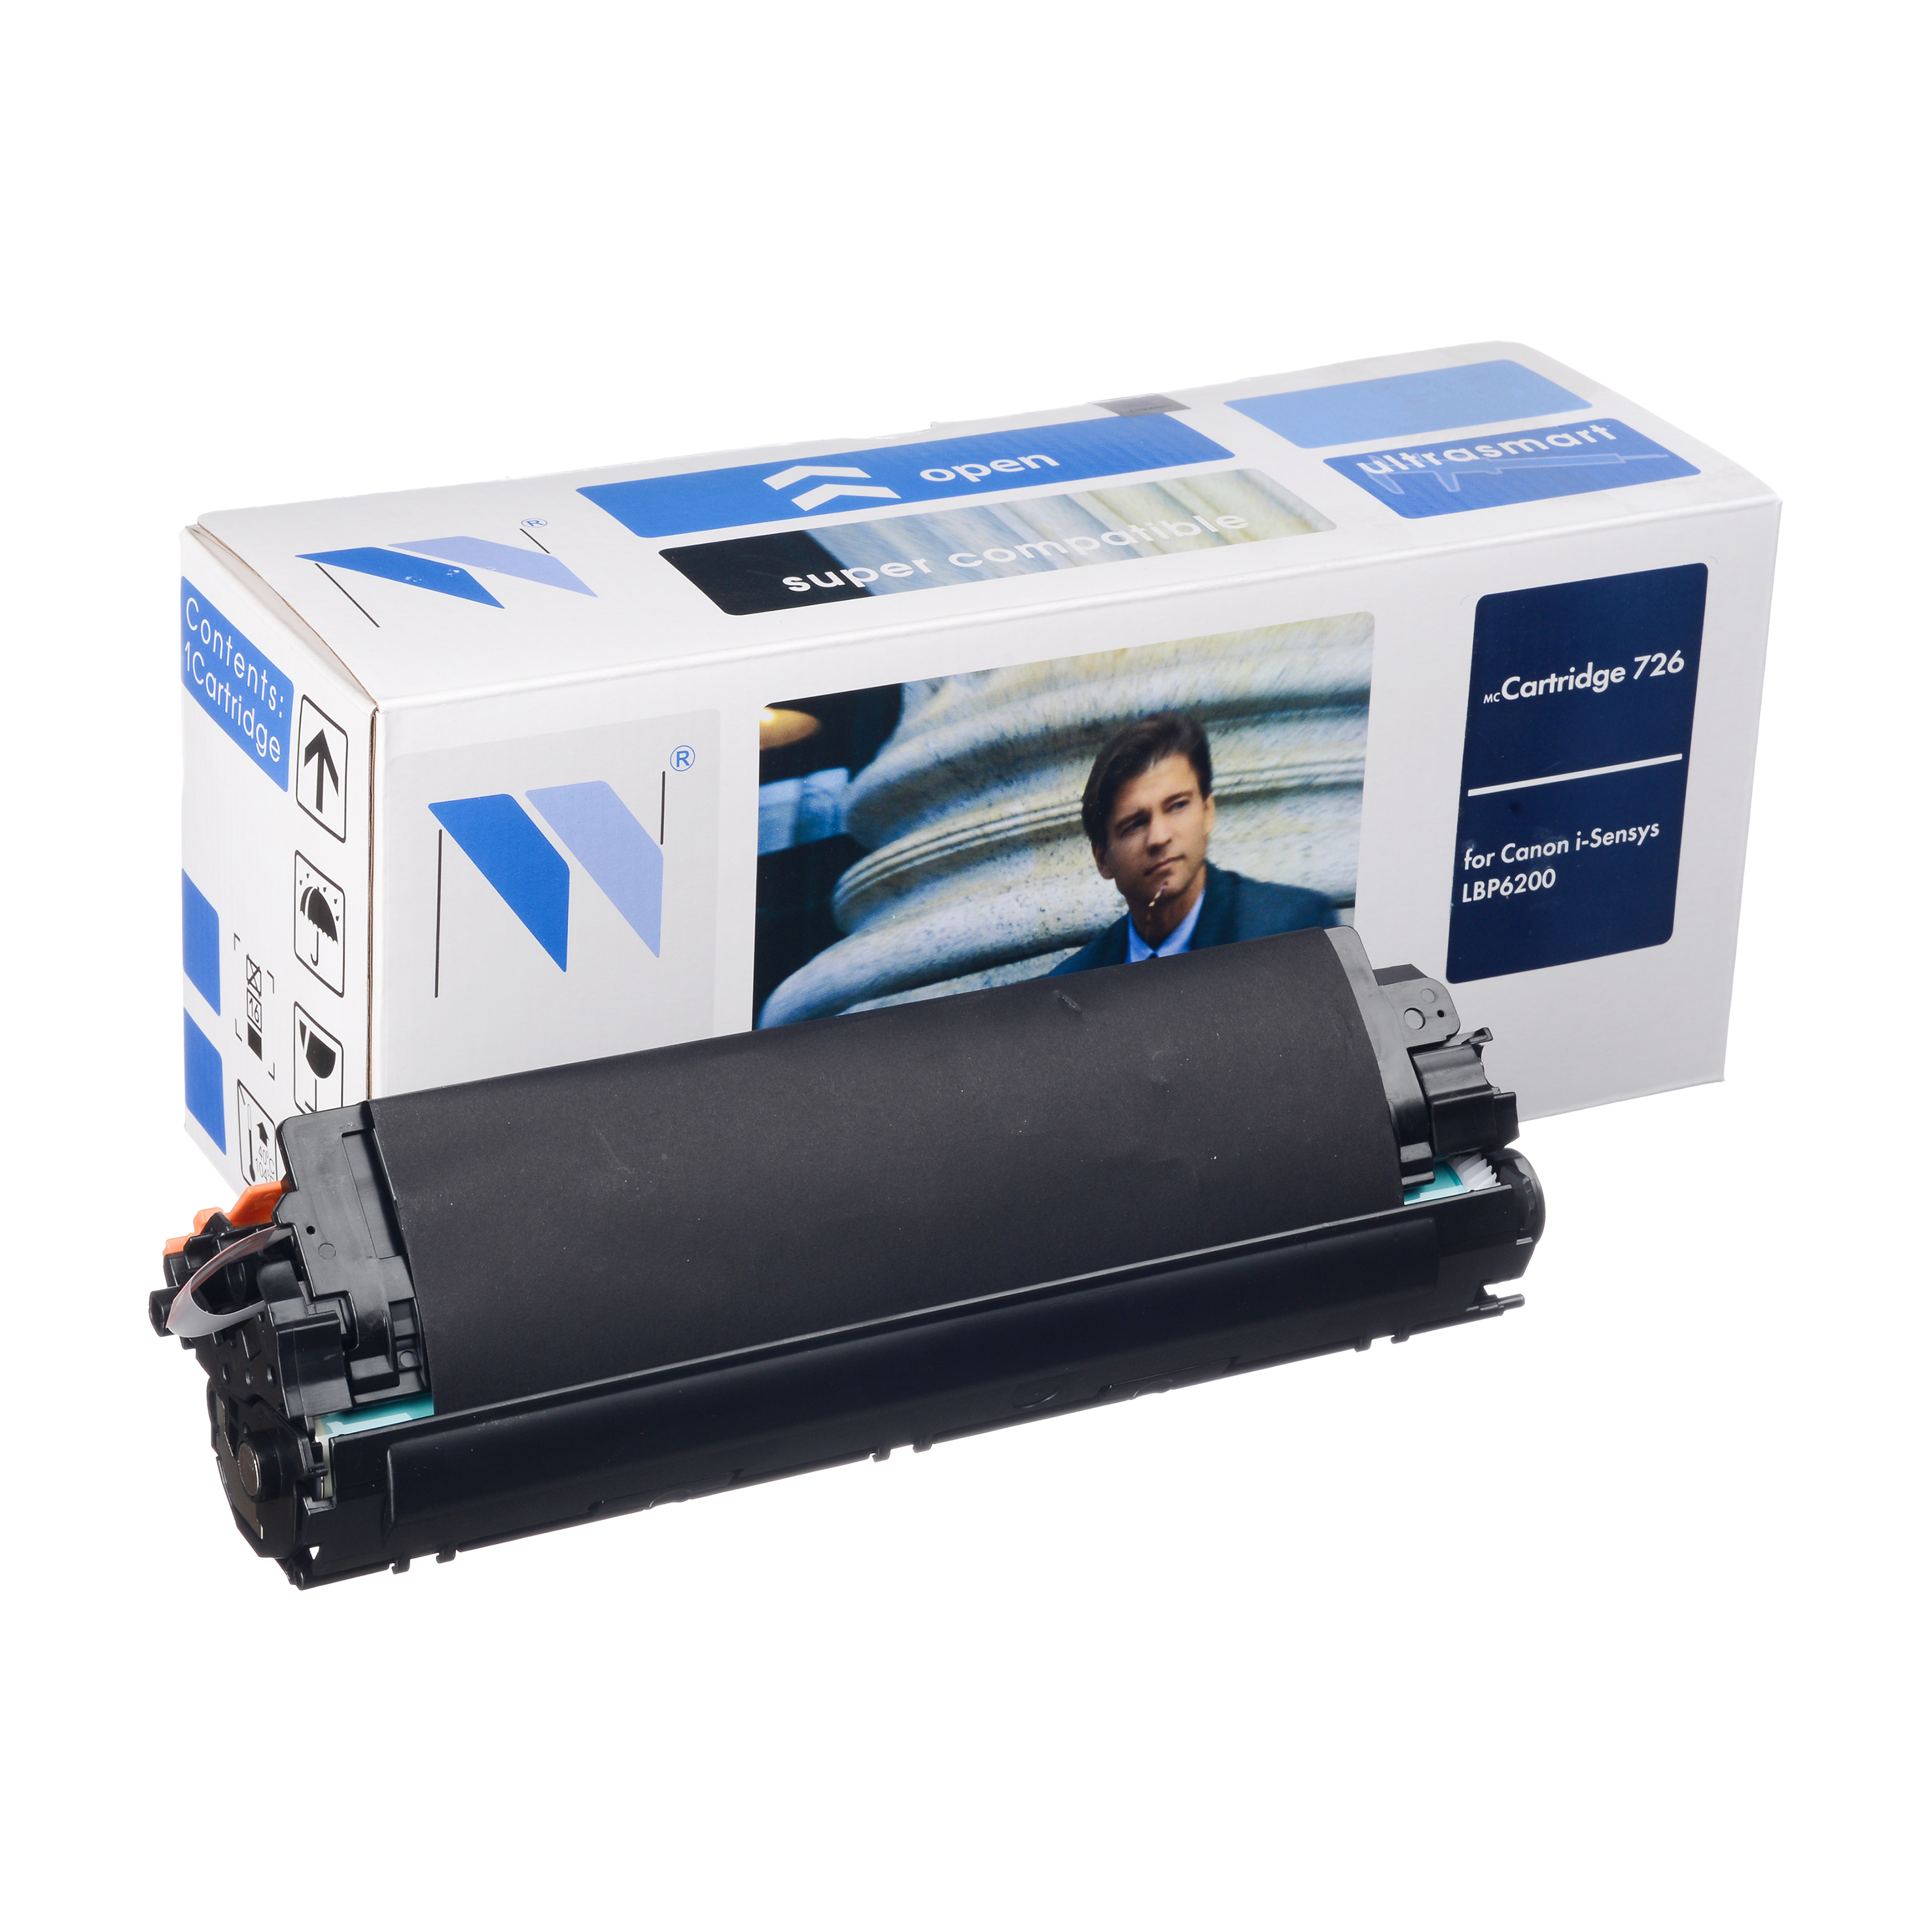 Картридж NV Print Cartridge 726Картридж NV Print для Canon LBP 6200dКартридж NV Print для Canon LBP 6200d